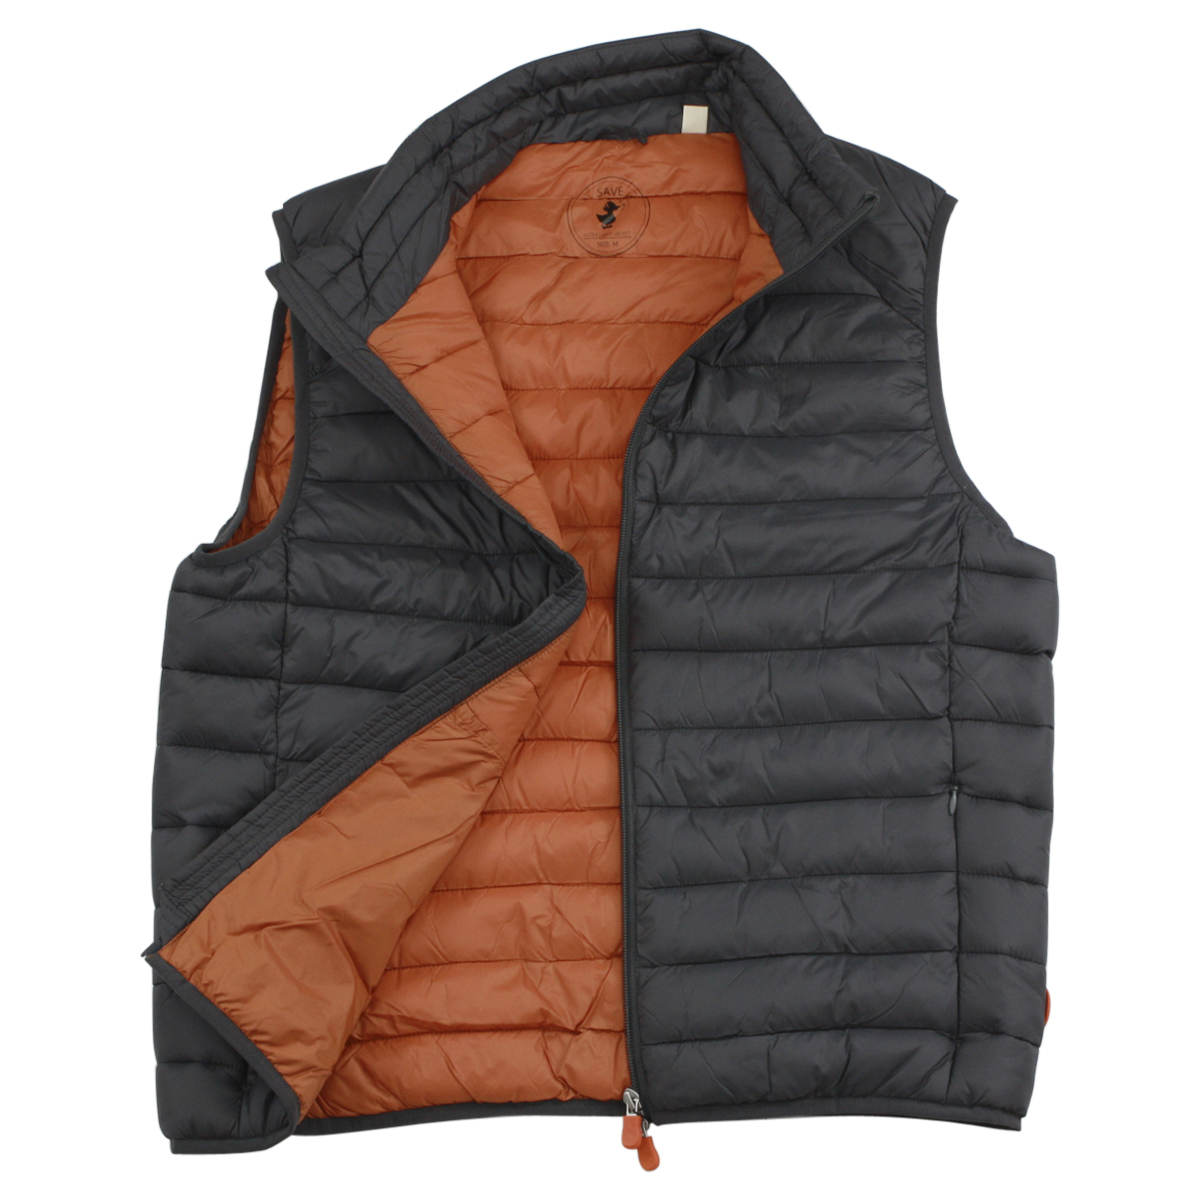 Image of Save The Duck Men's Lightweight Puffer Winter Vest - Grey - X Large